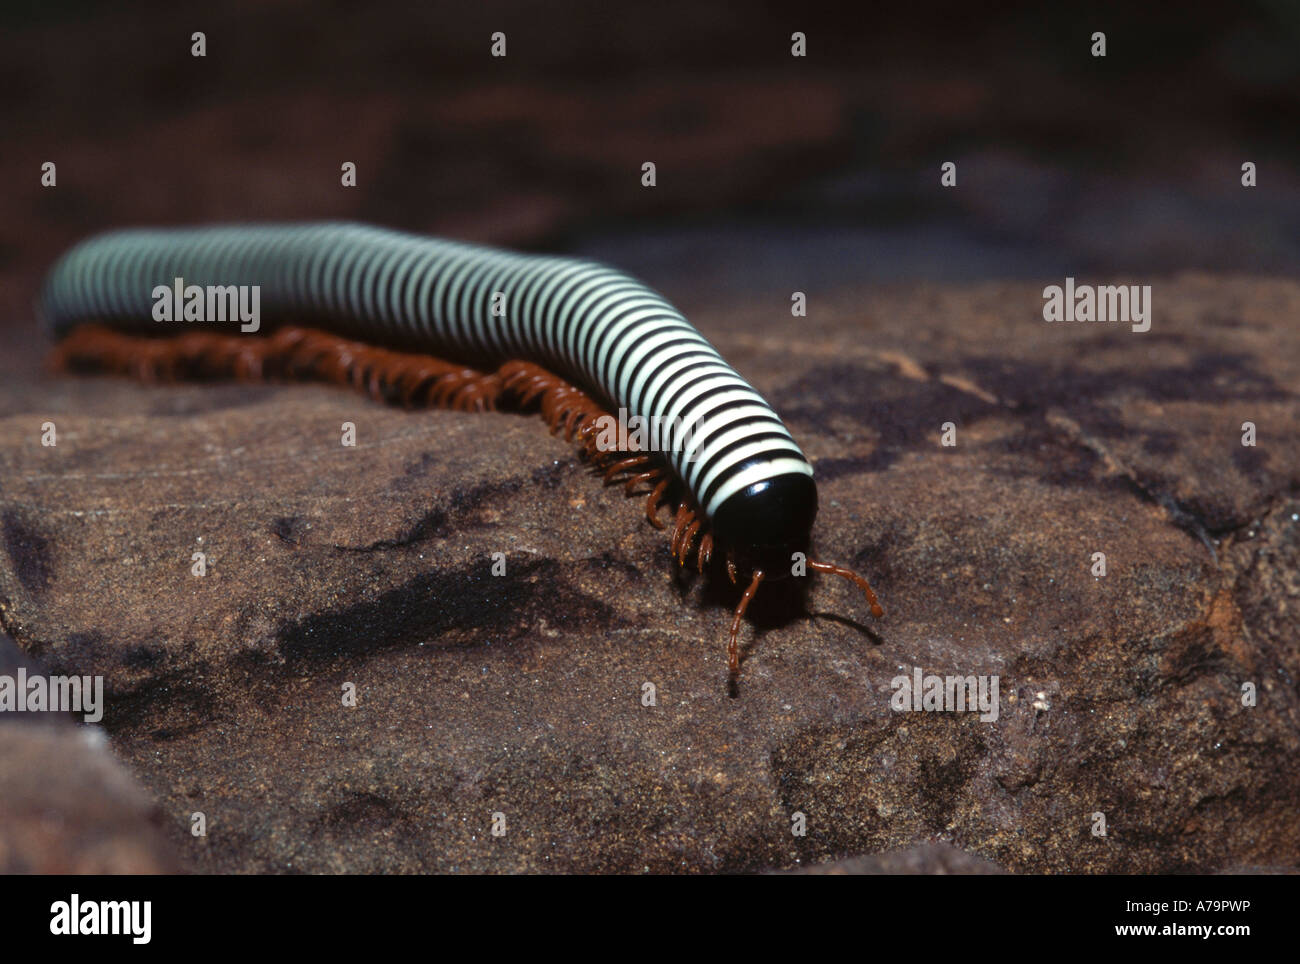 A Black And White Striped Millipede Or Songololo With Red Legs Stock Photo Alamy